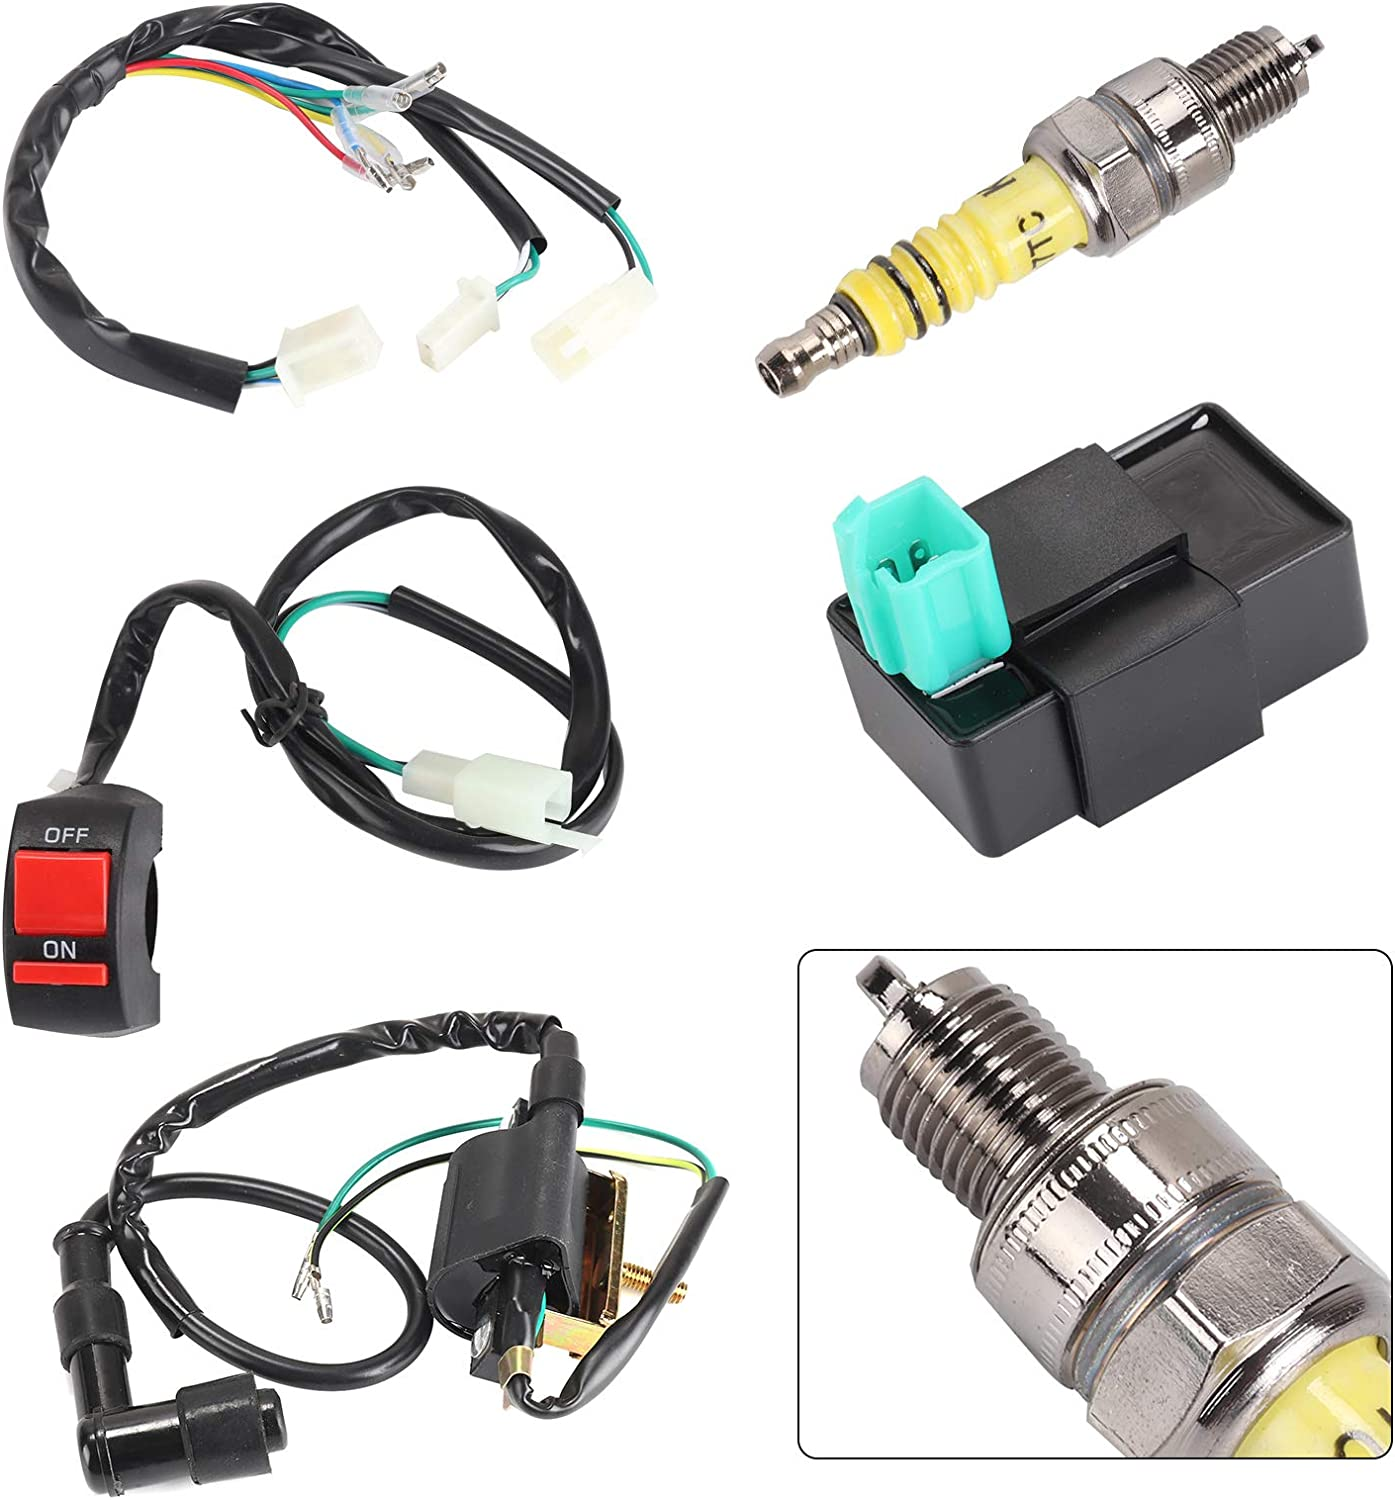 Shoze Wiring Loom Off Switch Coil Cdi Spark Plug Kit For 110cc 125cc 140cc Pit Bikes Amazon Co Uk Kitchen Home